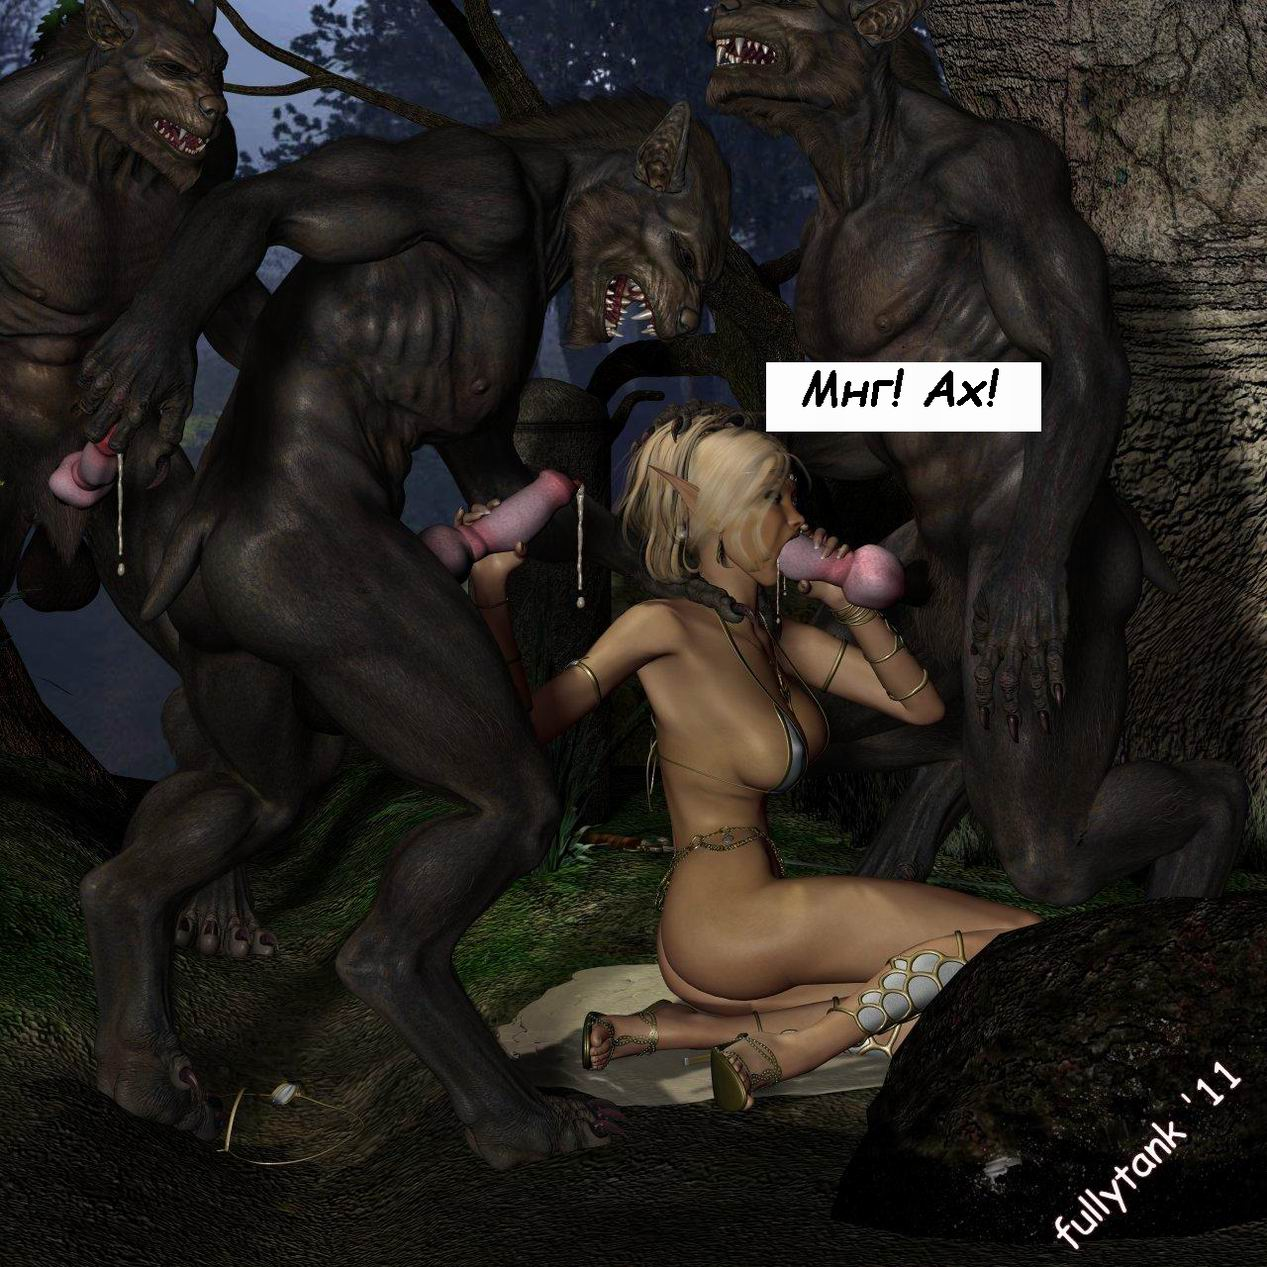 Fucking werwolf adult extreme angel